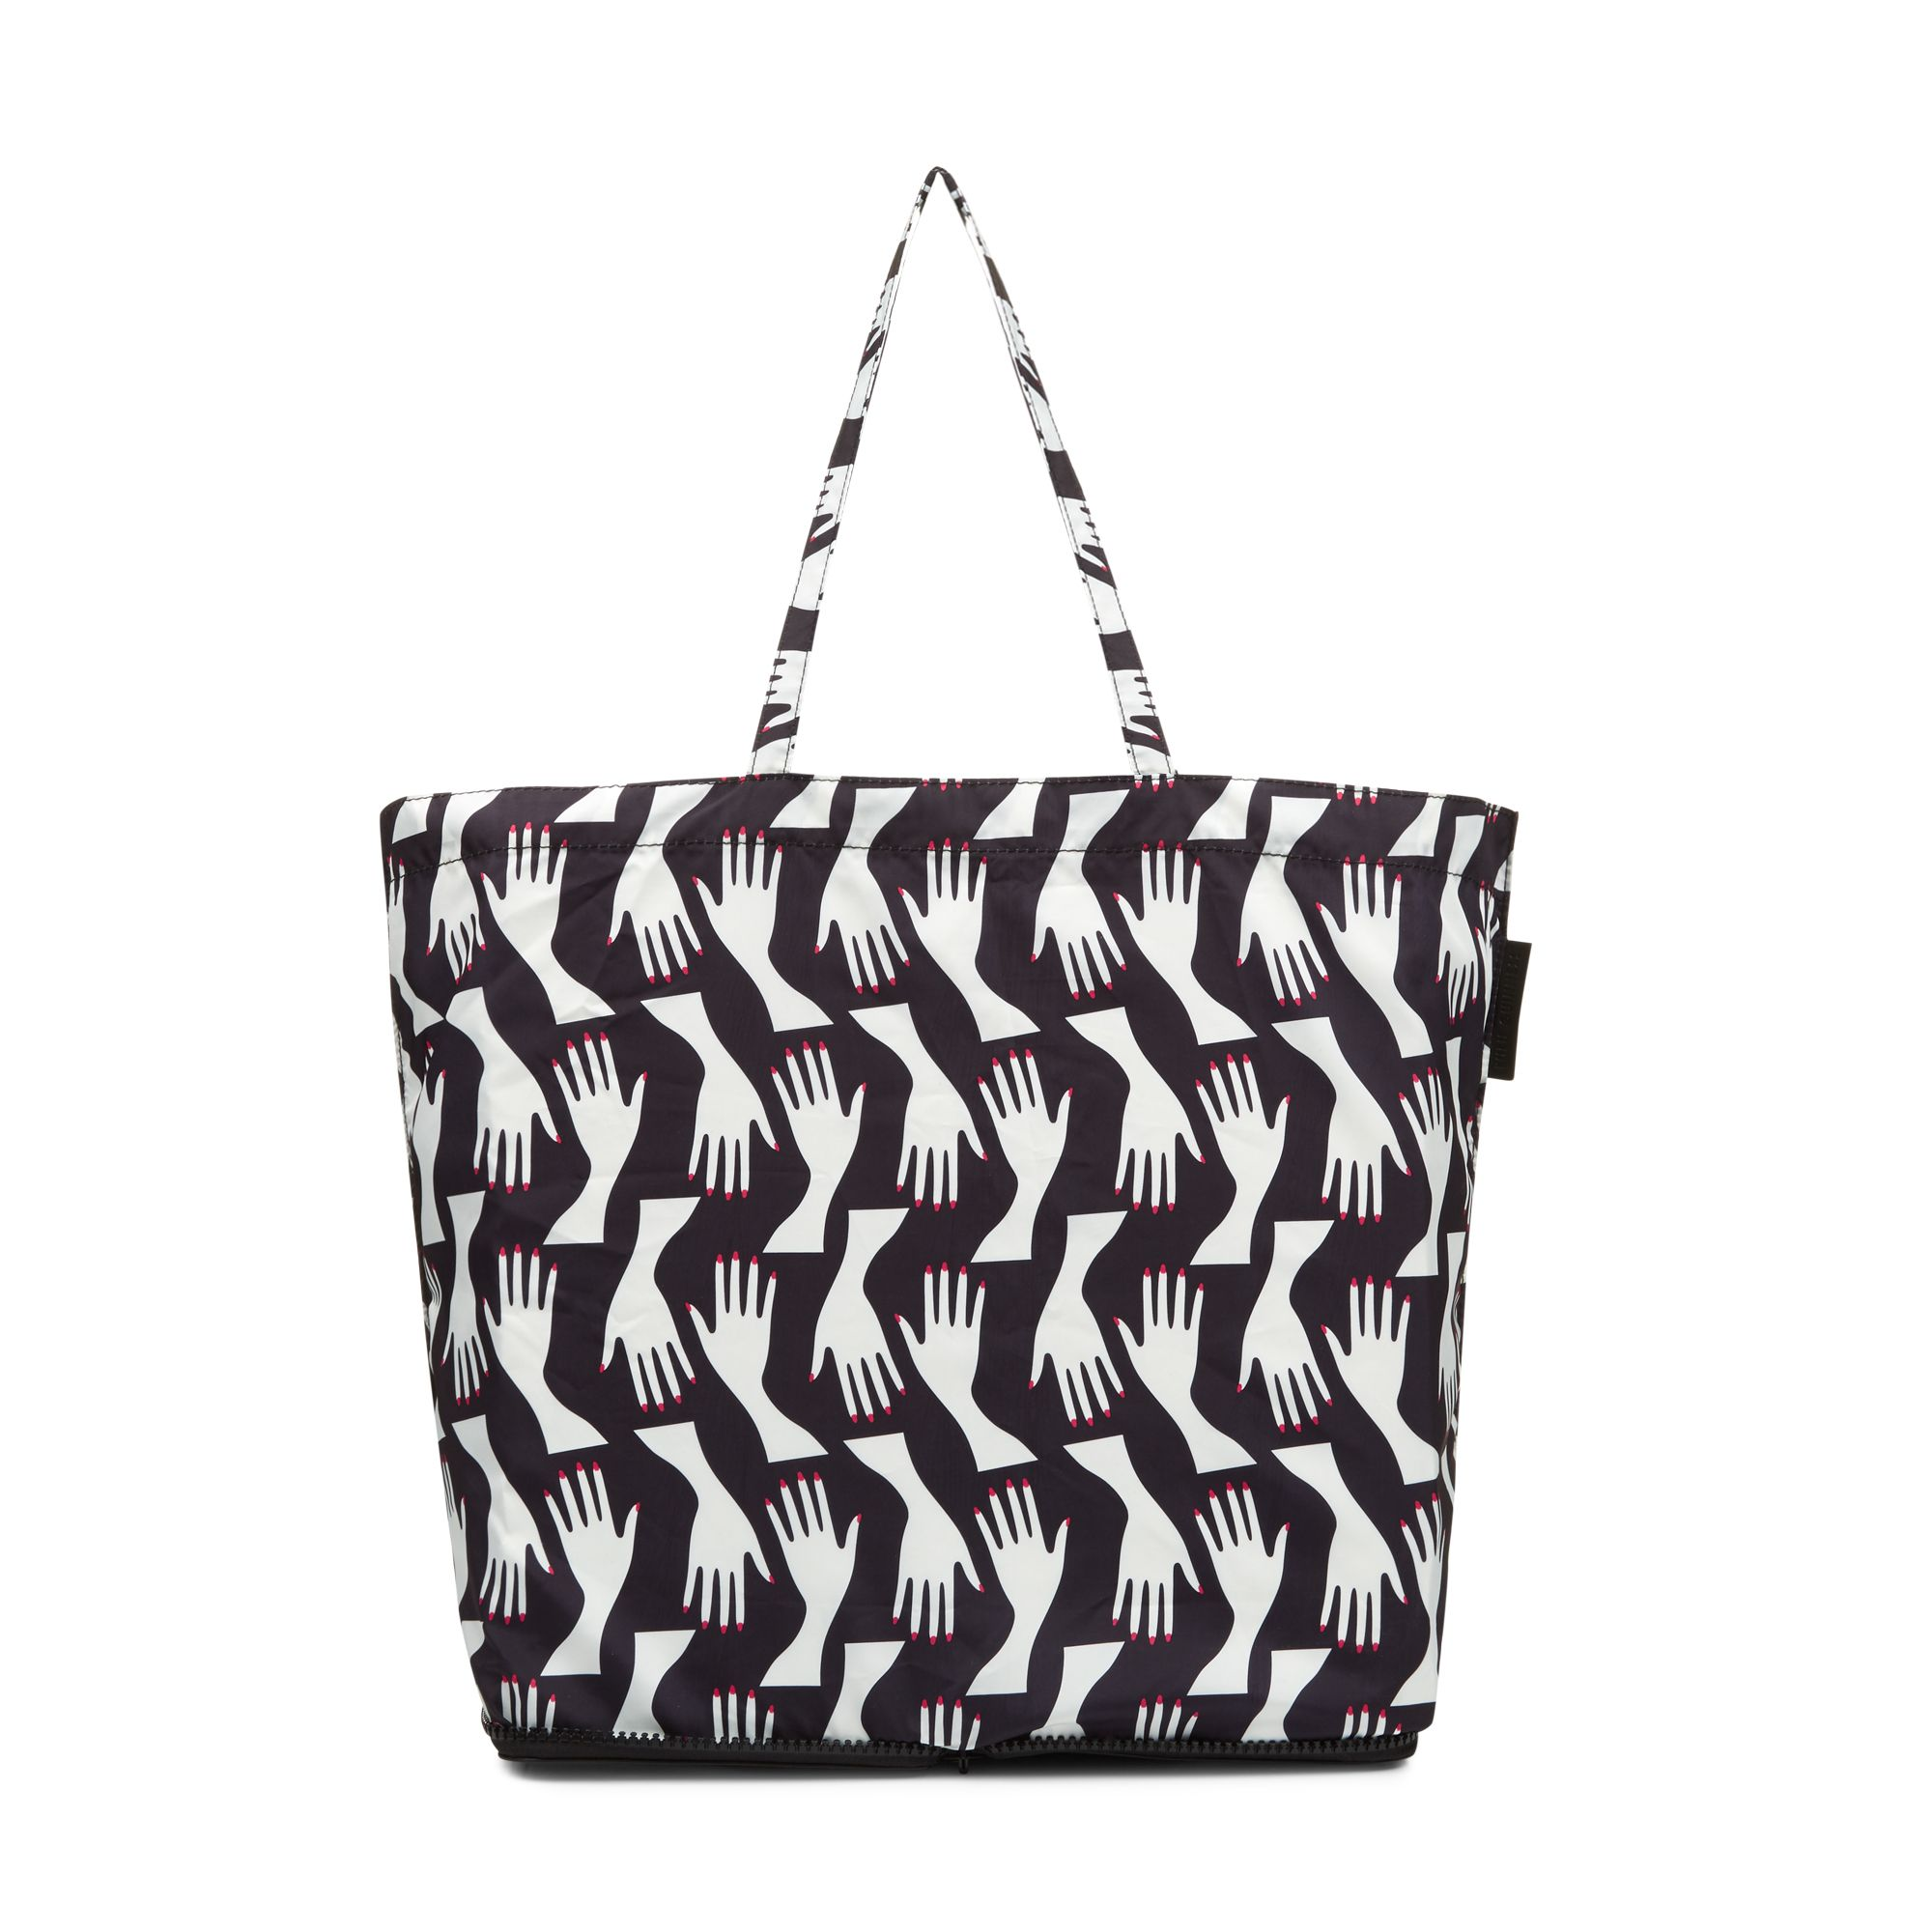 Lulu Guinness Hug print foldaway shopper, Multi-Coloured